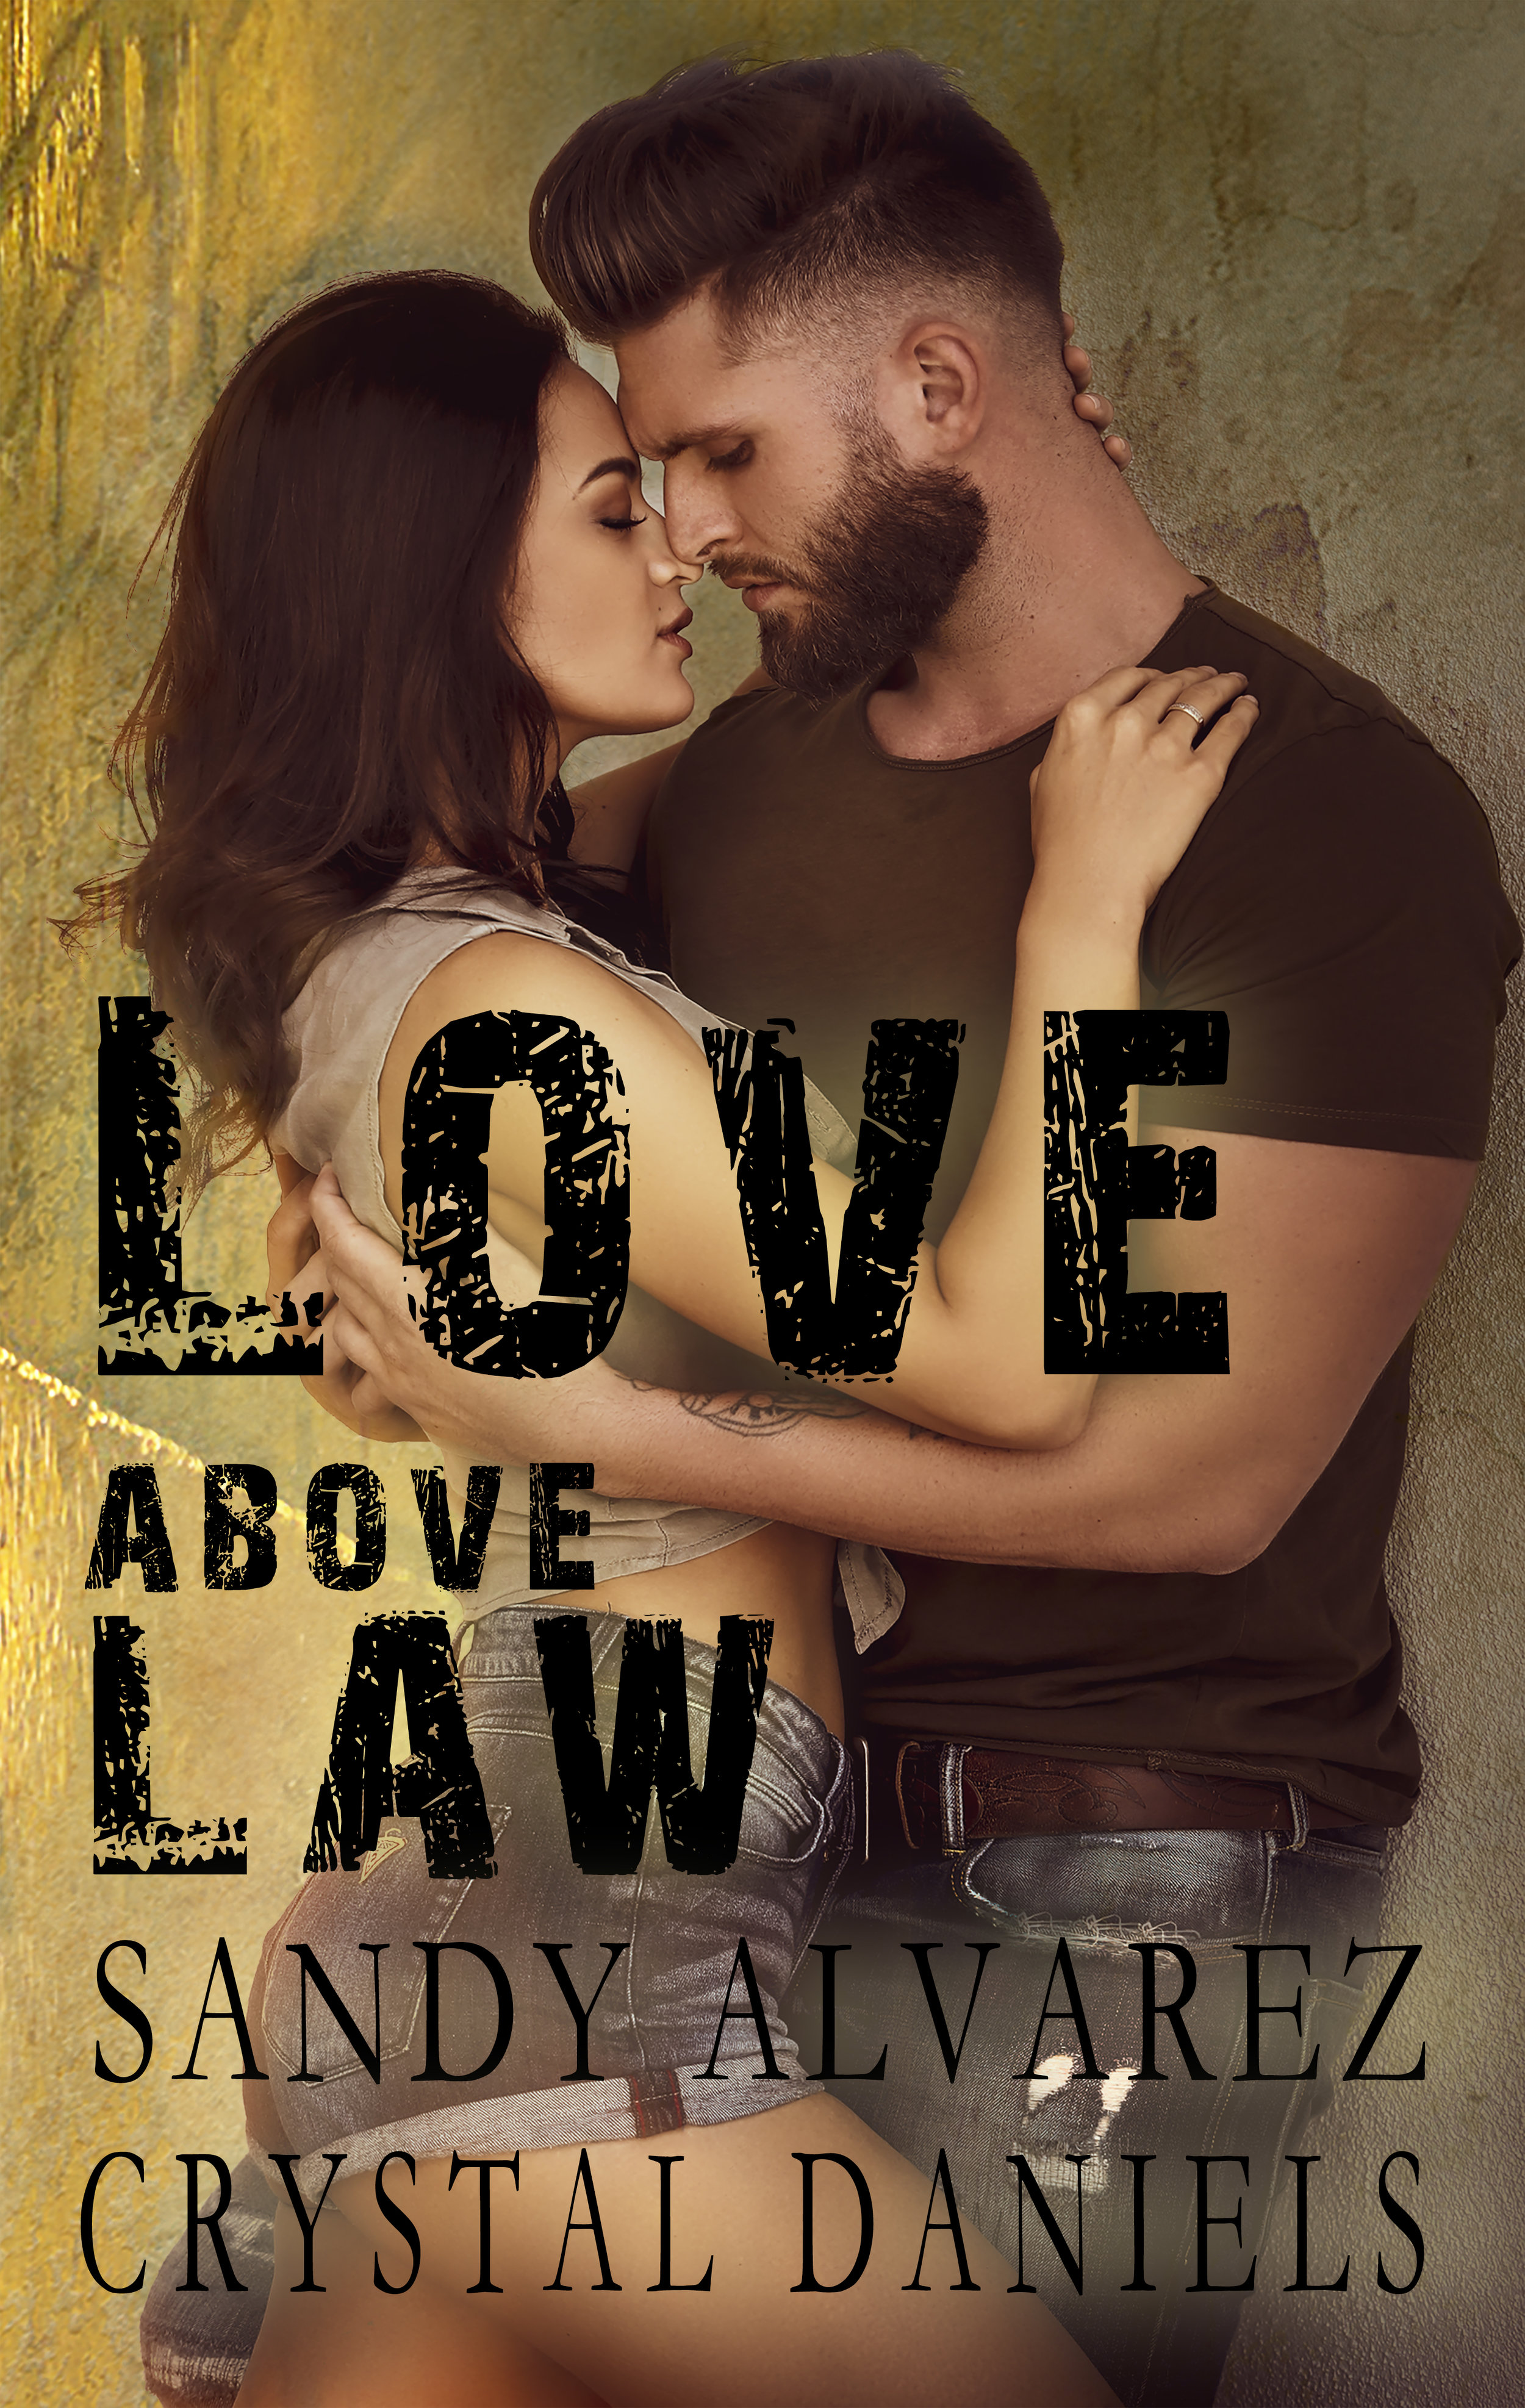 LOVE ABOVE LAW - Agent Lex Taylor~My assignment—take down human and drug trafficker Miguel Santino and rescue Leyna Martinez, the sister of an outlaw MC member.One look.That's all it took.My center of gravity shifted, and I knew. She was going to be mine.I take down criminals; the rats of society. I eat, sleep and breath the law, but I'm willing to risk it all—my badge and my life to protect her.